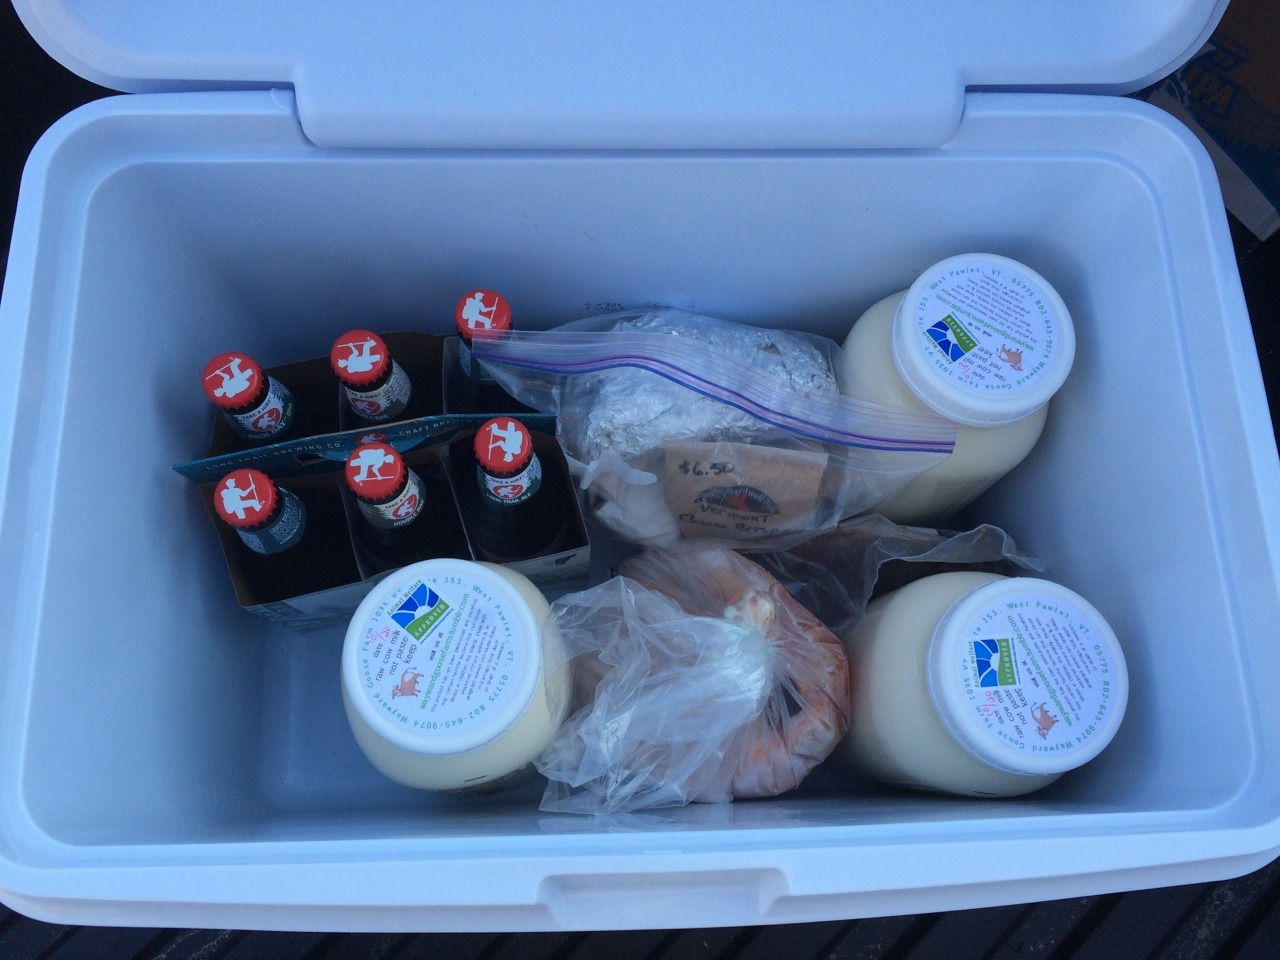 "skeleton-weather:  How to leave Vermont.  1 1/2 gallons raw milk 1 roaster chicken(1.5lbs) 1lb beef stew meat 1lb raw cows milk cheese 1/2lb raw goats milk cheese 6 pack assorted Long Trail beers  (Not pictured) 1 case (24 bottles) Long Trail ""Sick Day"" IPA  All animal products certified humane, organic, and GMO free.  Hell yes… My second favorite part about moving to south Carolina is being able to buy raw milk, its the best milk ever!!!"